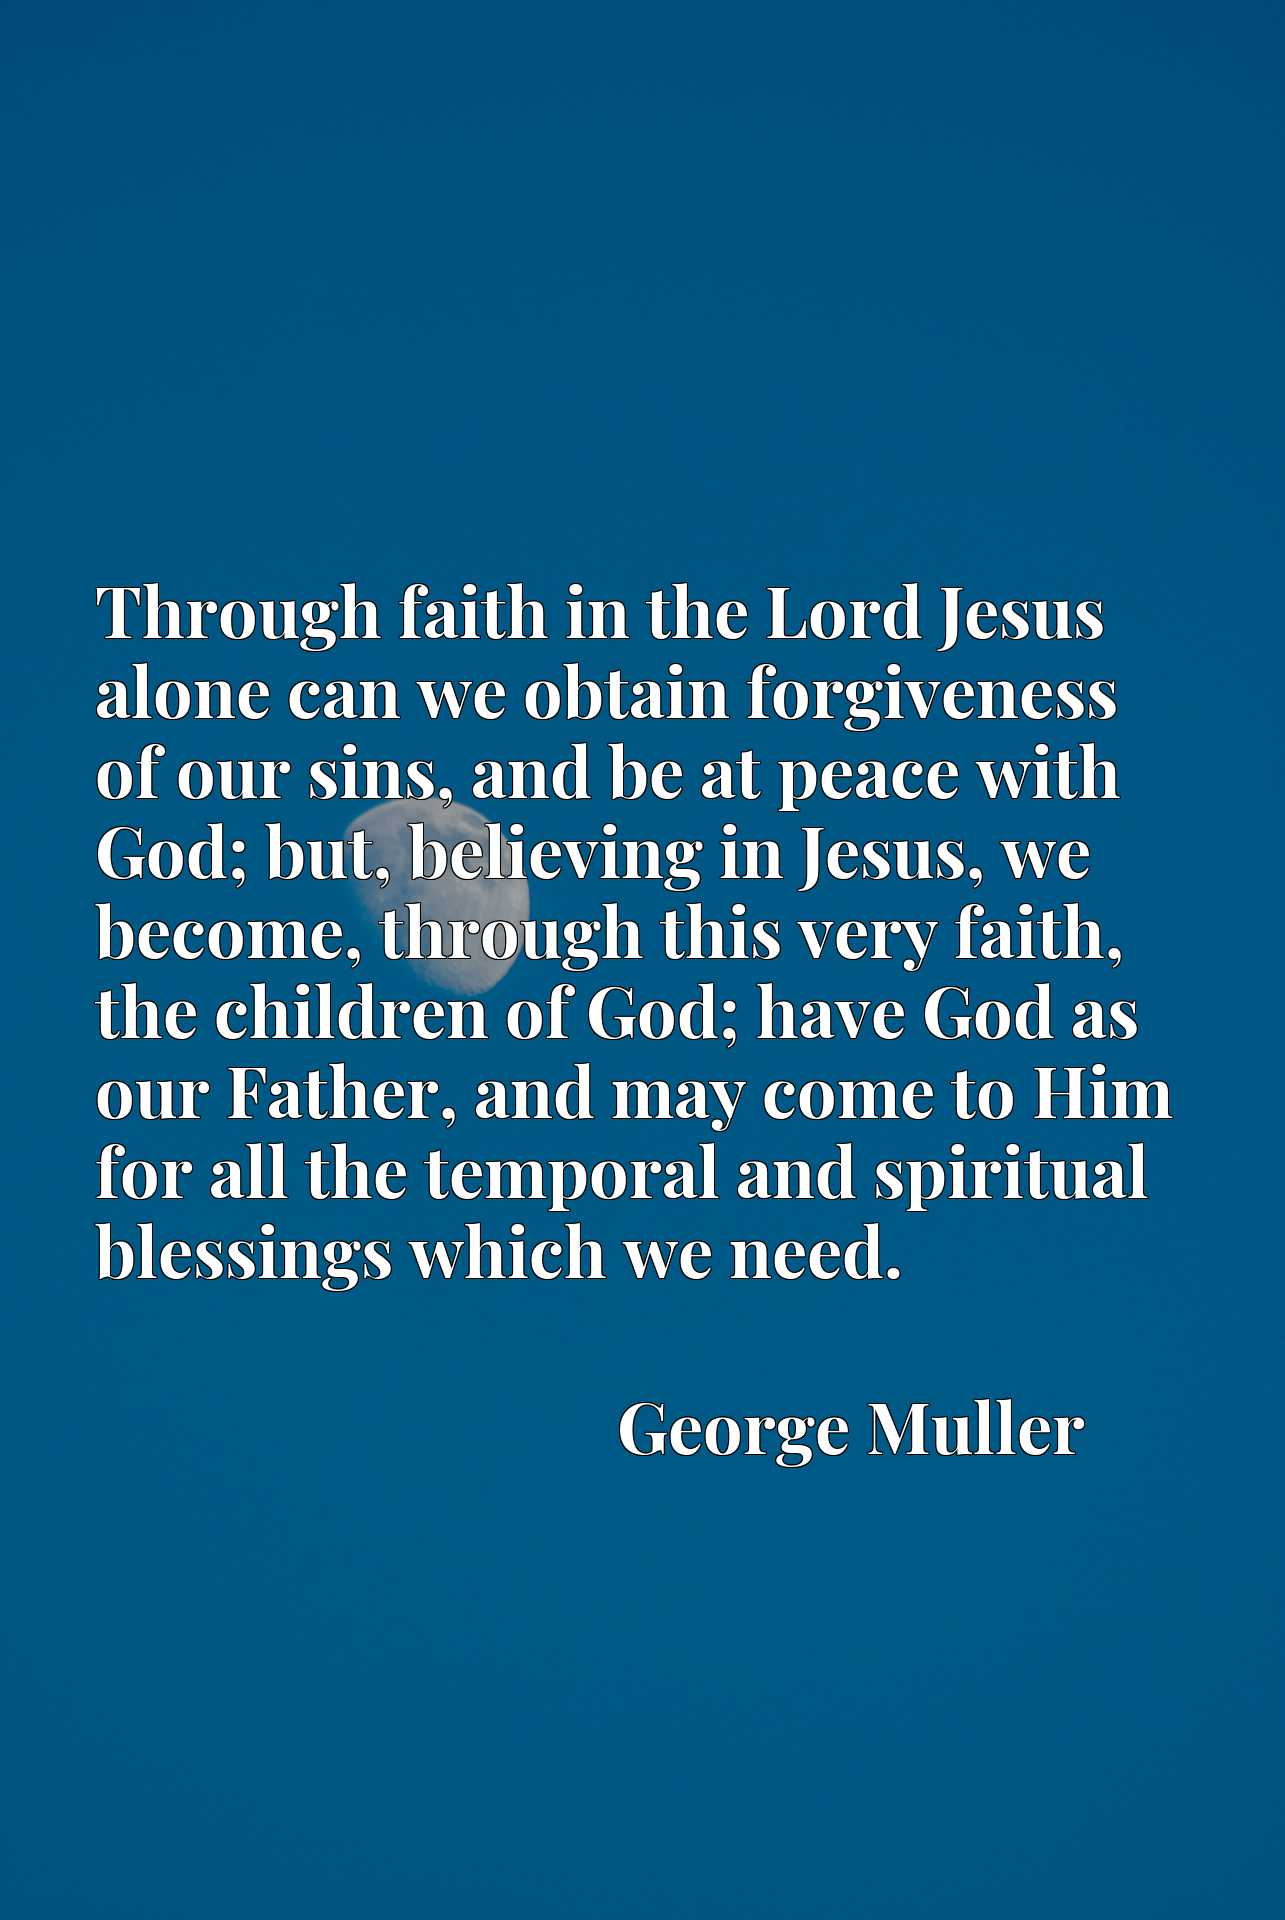 Through faith in the Lord Jesus alone can we obtain forgiveness of our sins, and be at peace with God; but, believing in Jesus, we become, through this very faith, the children of God; have God as our Father, and may come to Him for all the temporal and spiritual blessings which we need.